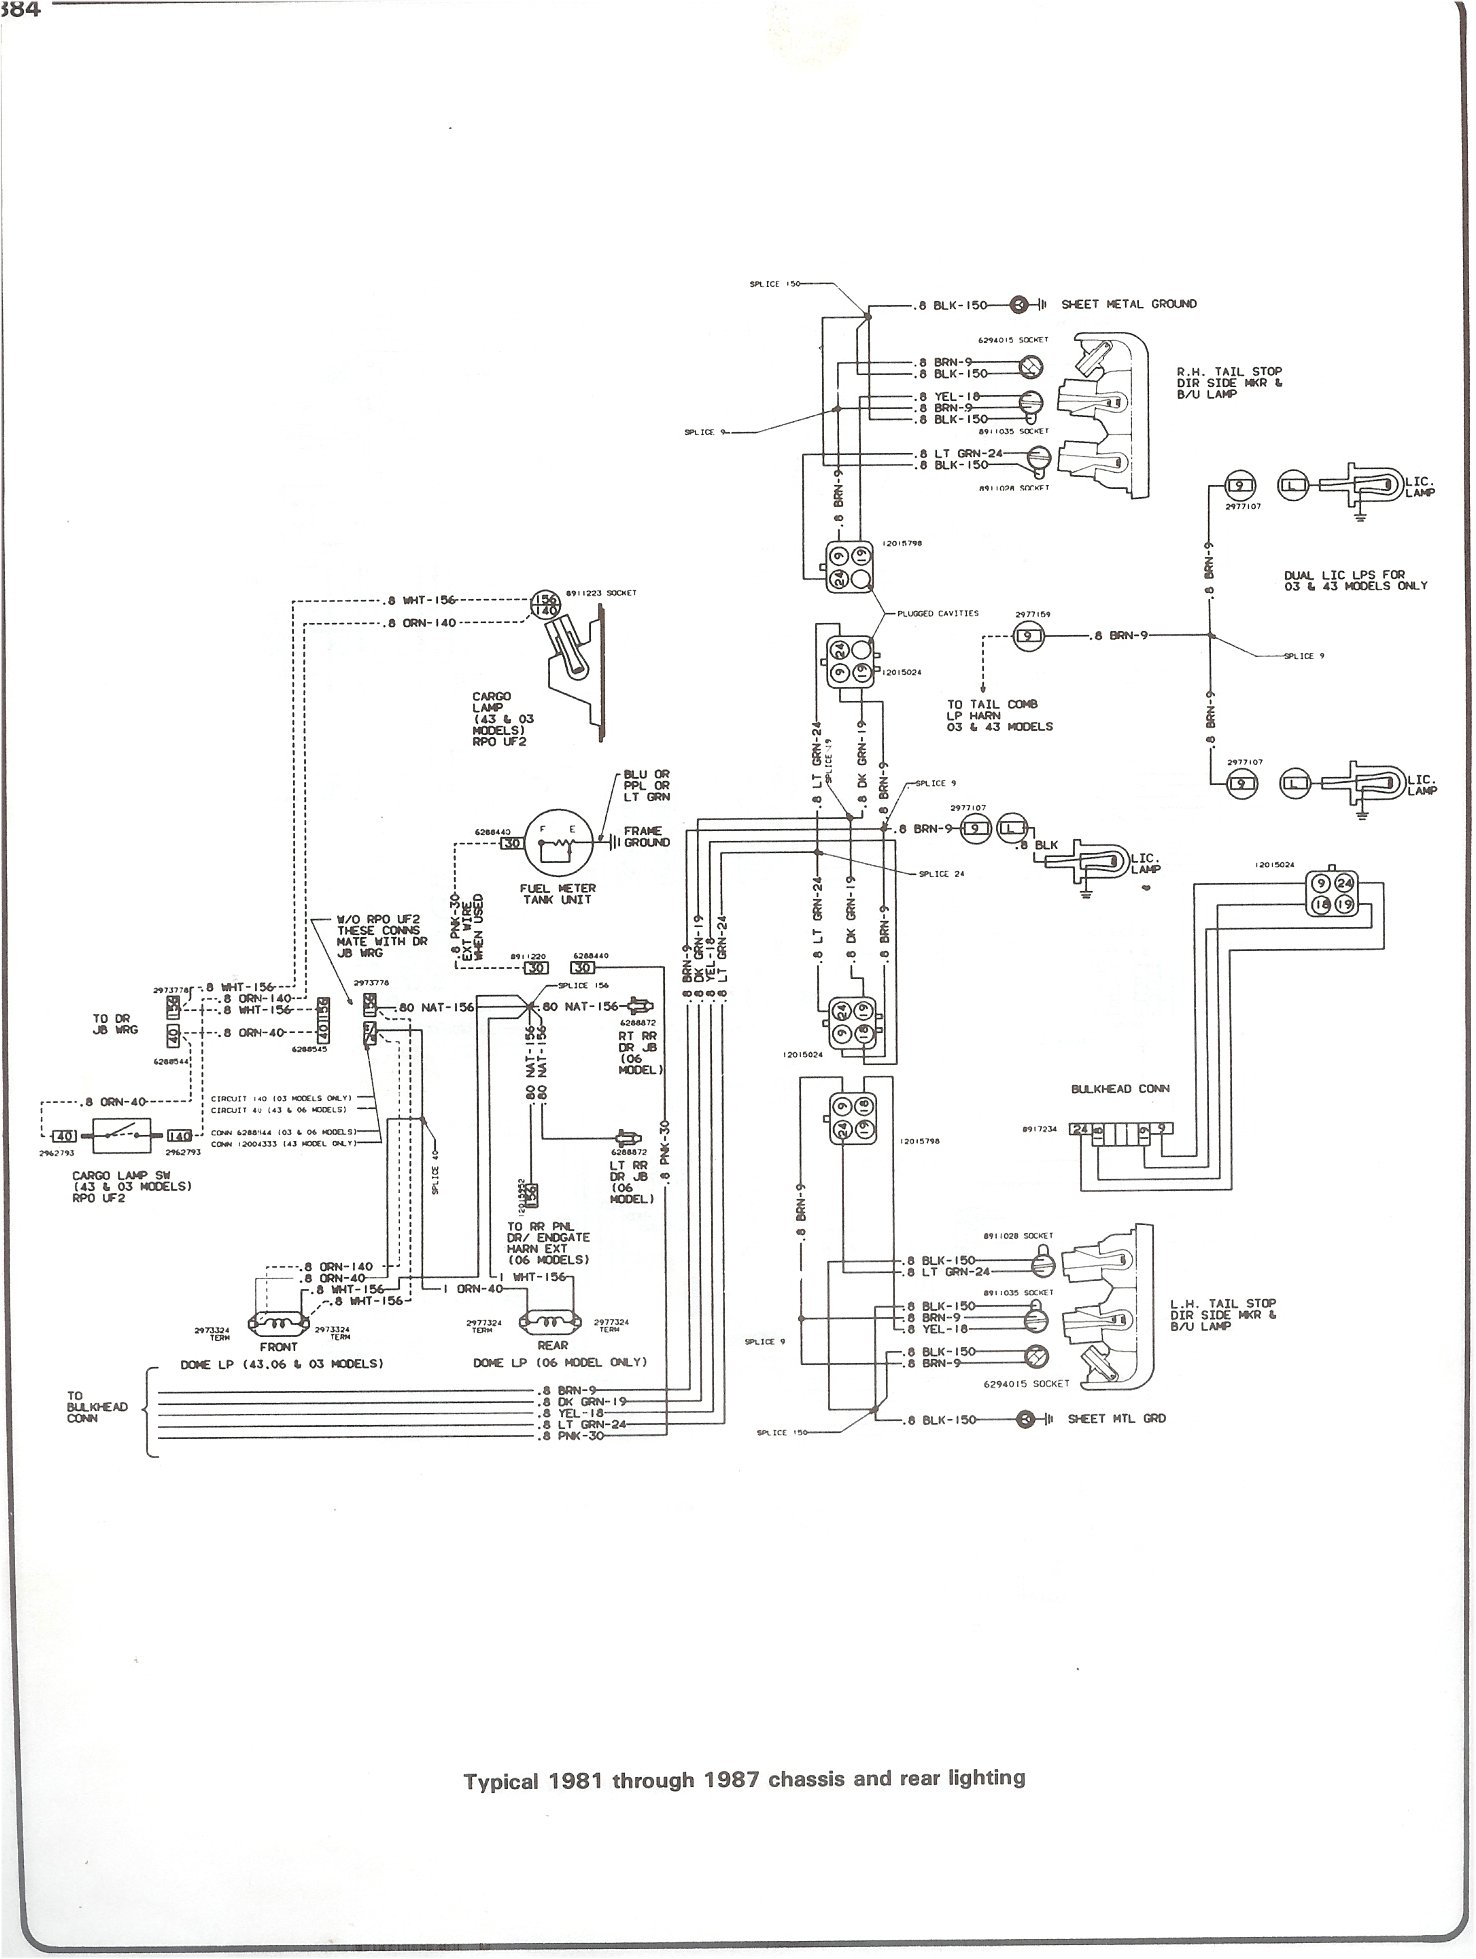 Complete 73 87 Wiring Diagrams 2005 Mazda 6 Electrical Diagram 81 Chassis And Rear Lighting